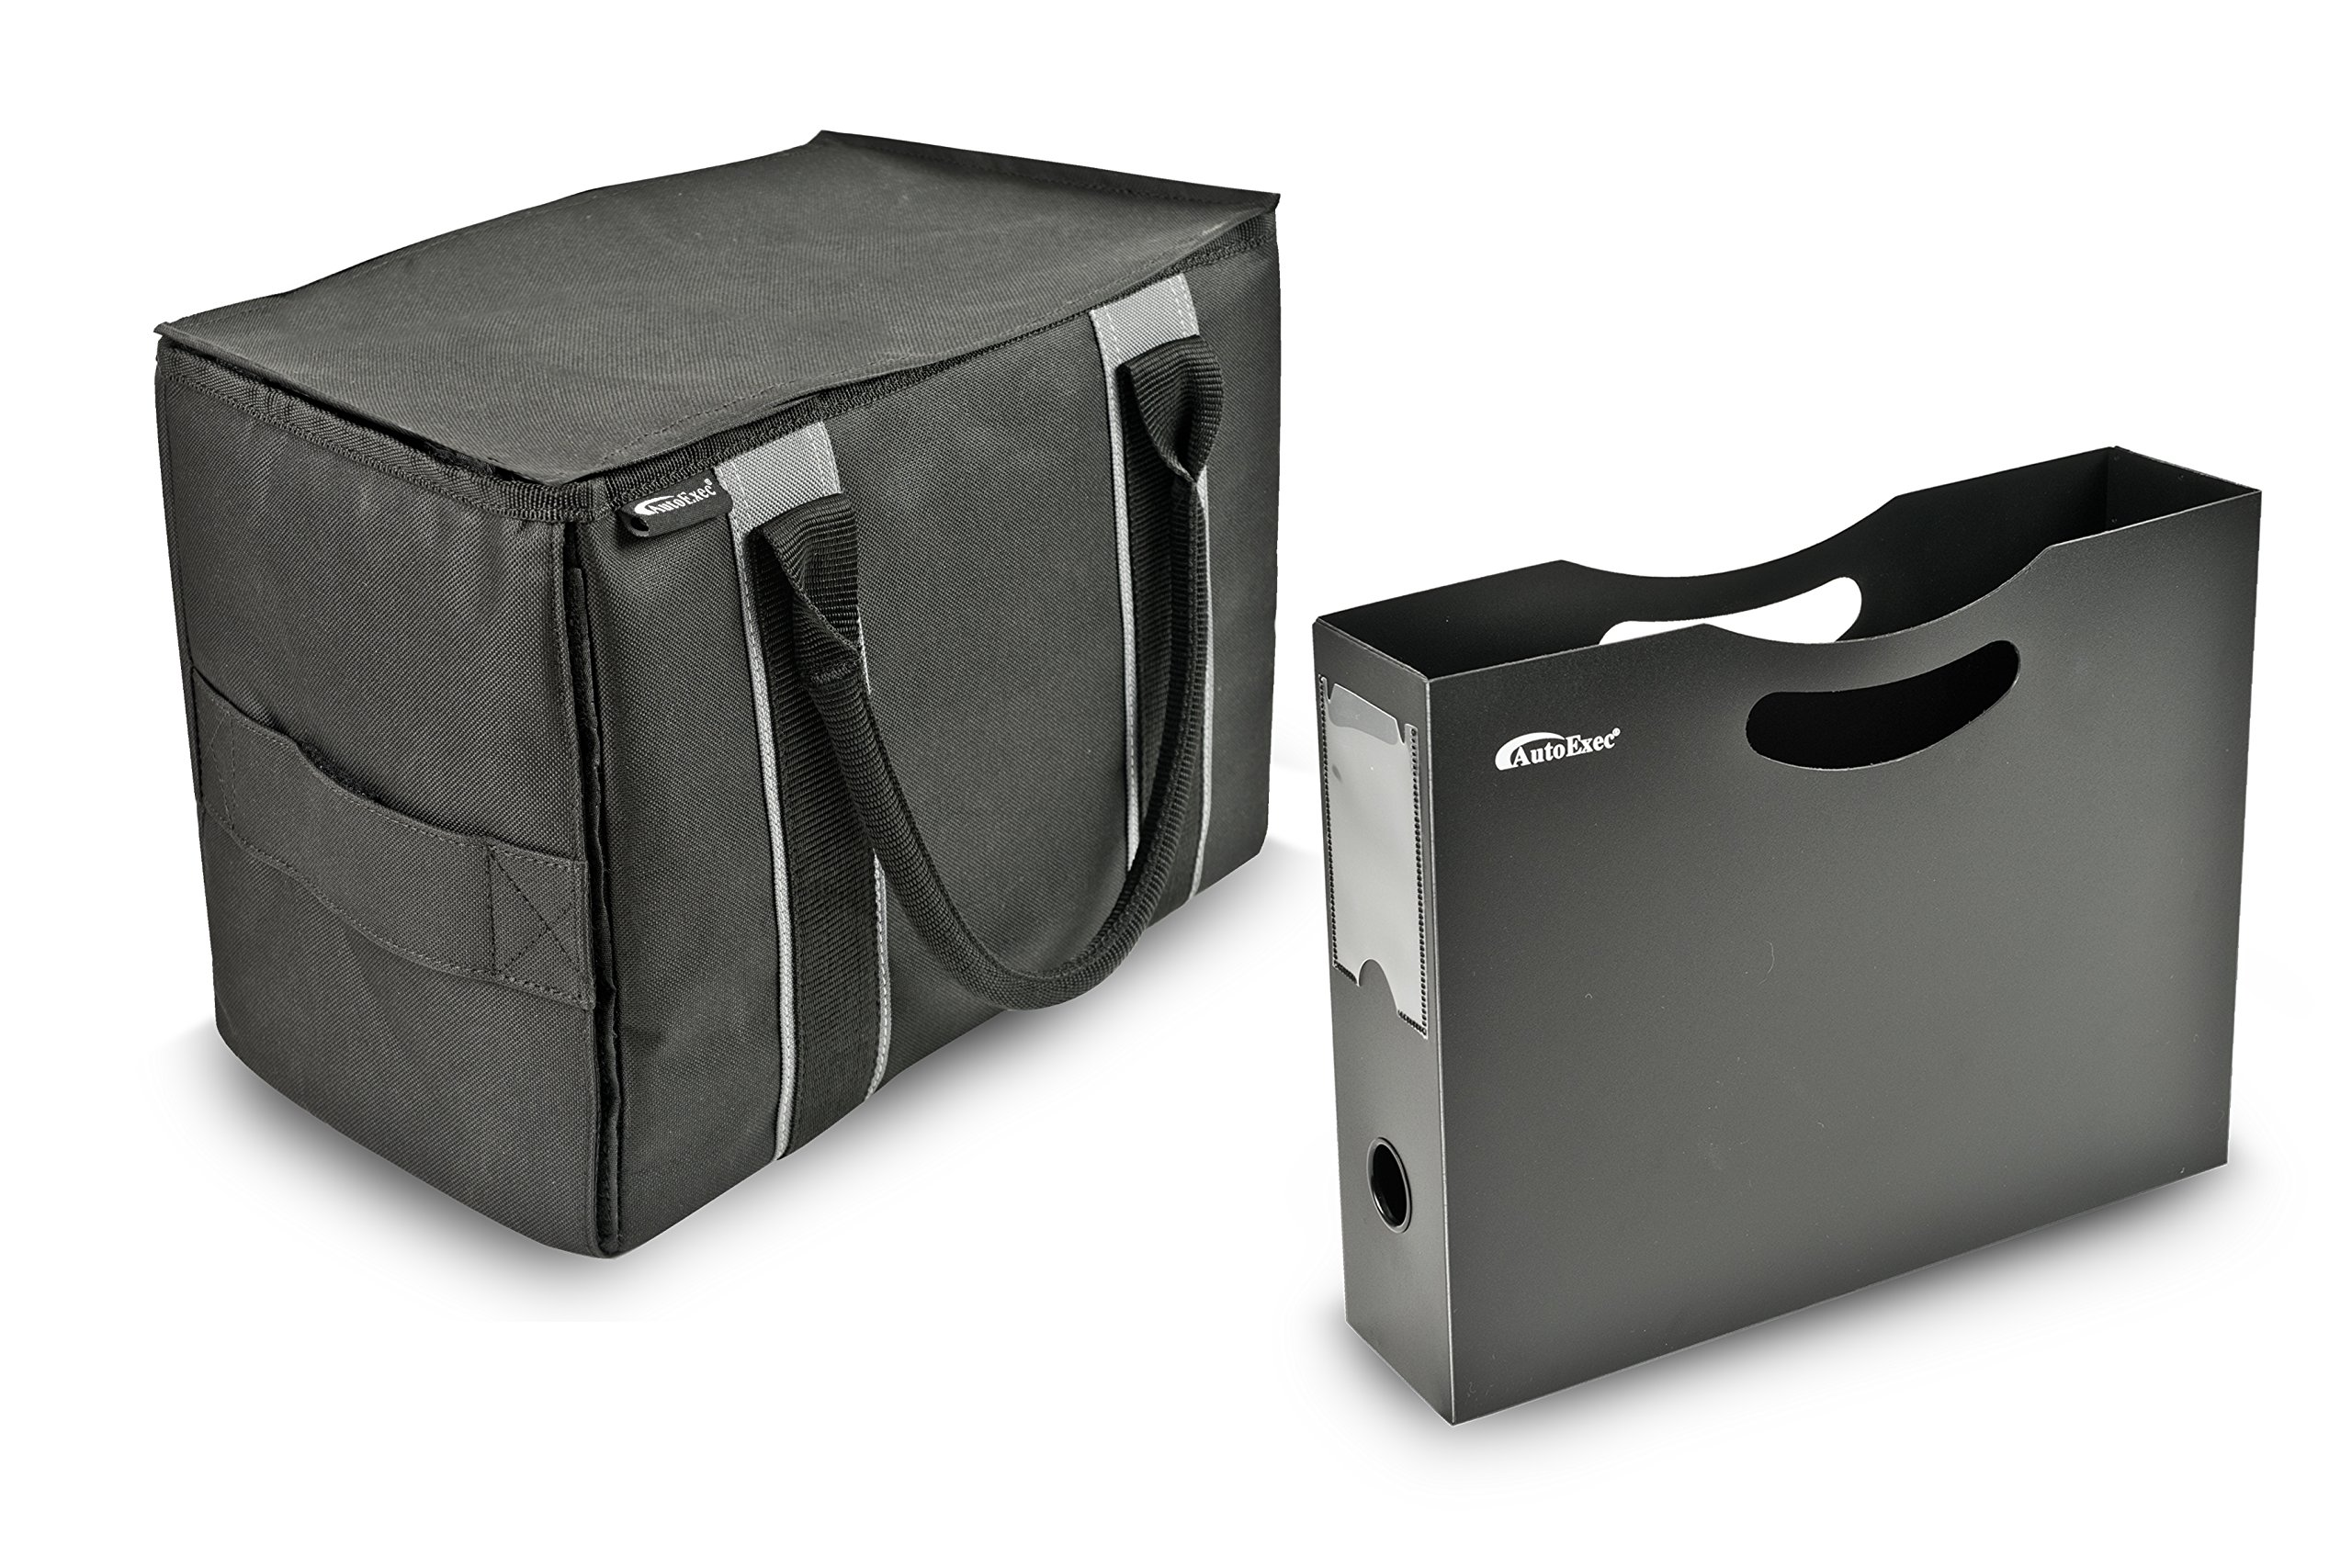 AutoExec AEMTote-03 Black/Grey Mini File Tote with One Hanging File Holder